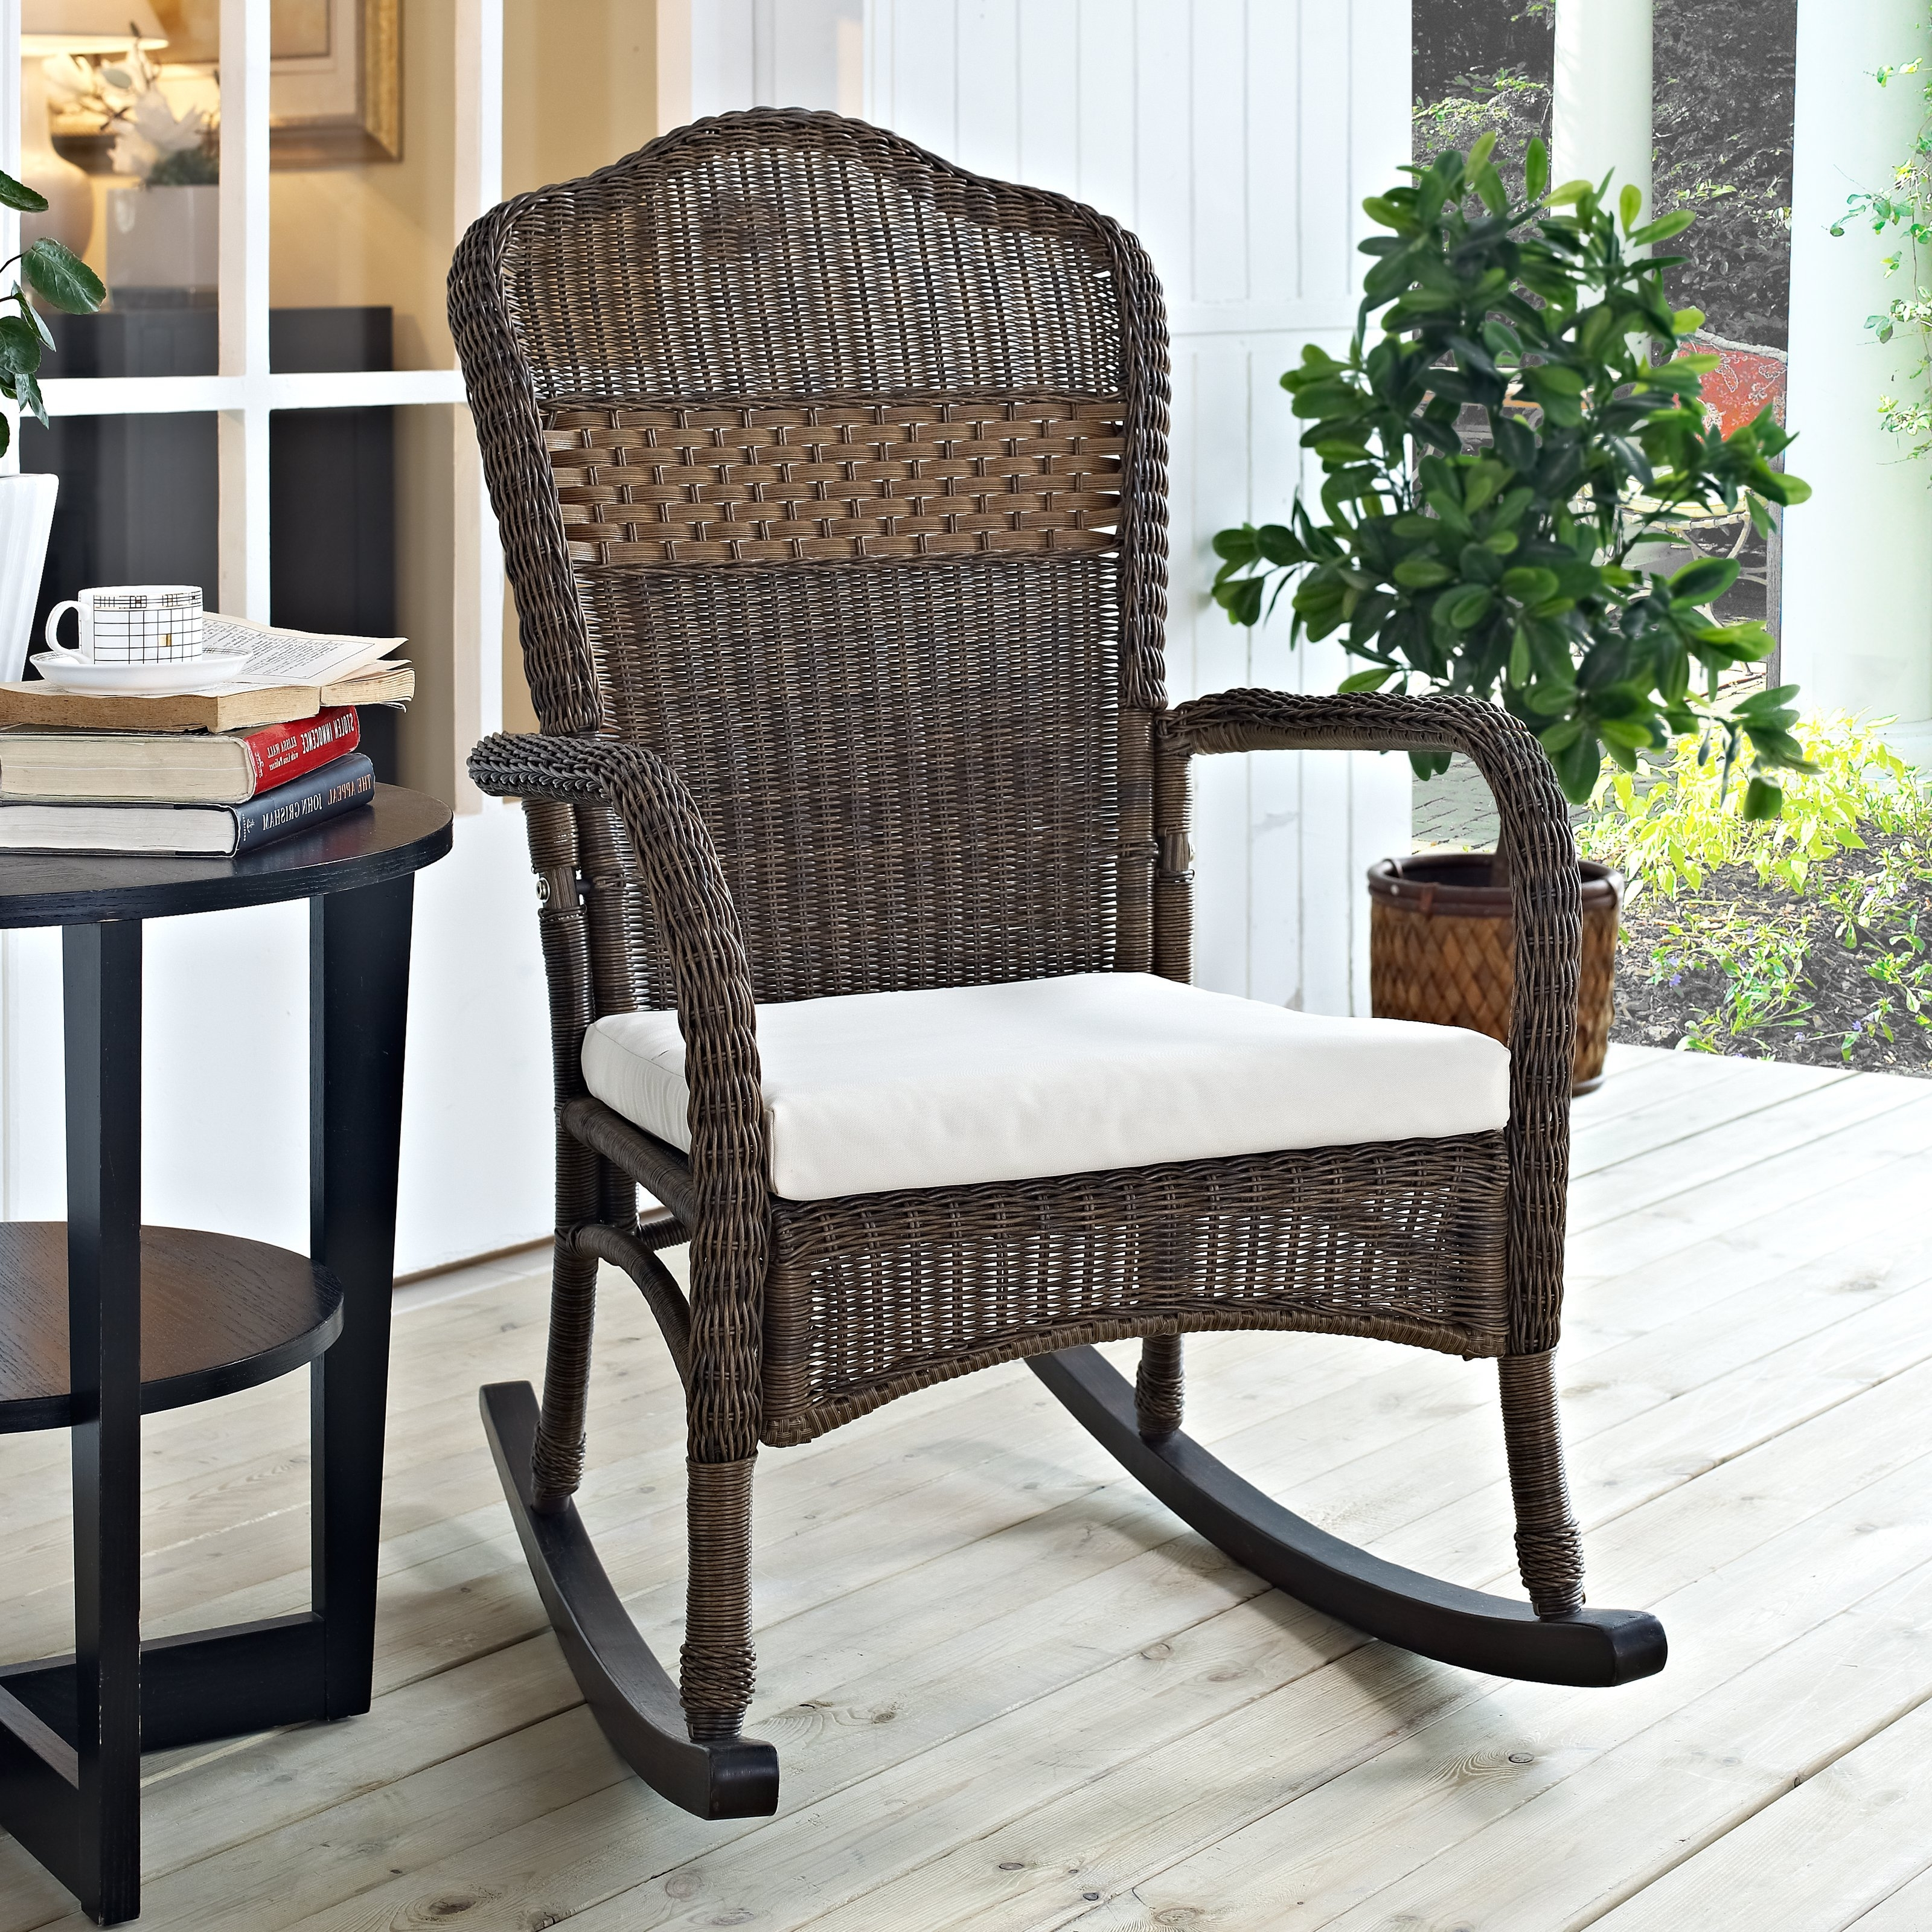 Fashionable Popular Patio Furniture Chairs Outdoor Rocking Top Porch Residence For Patio Rocking Chairs With Cushions (View 6 of 15)